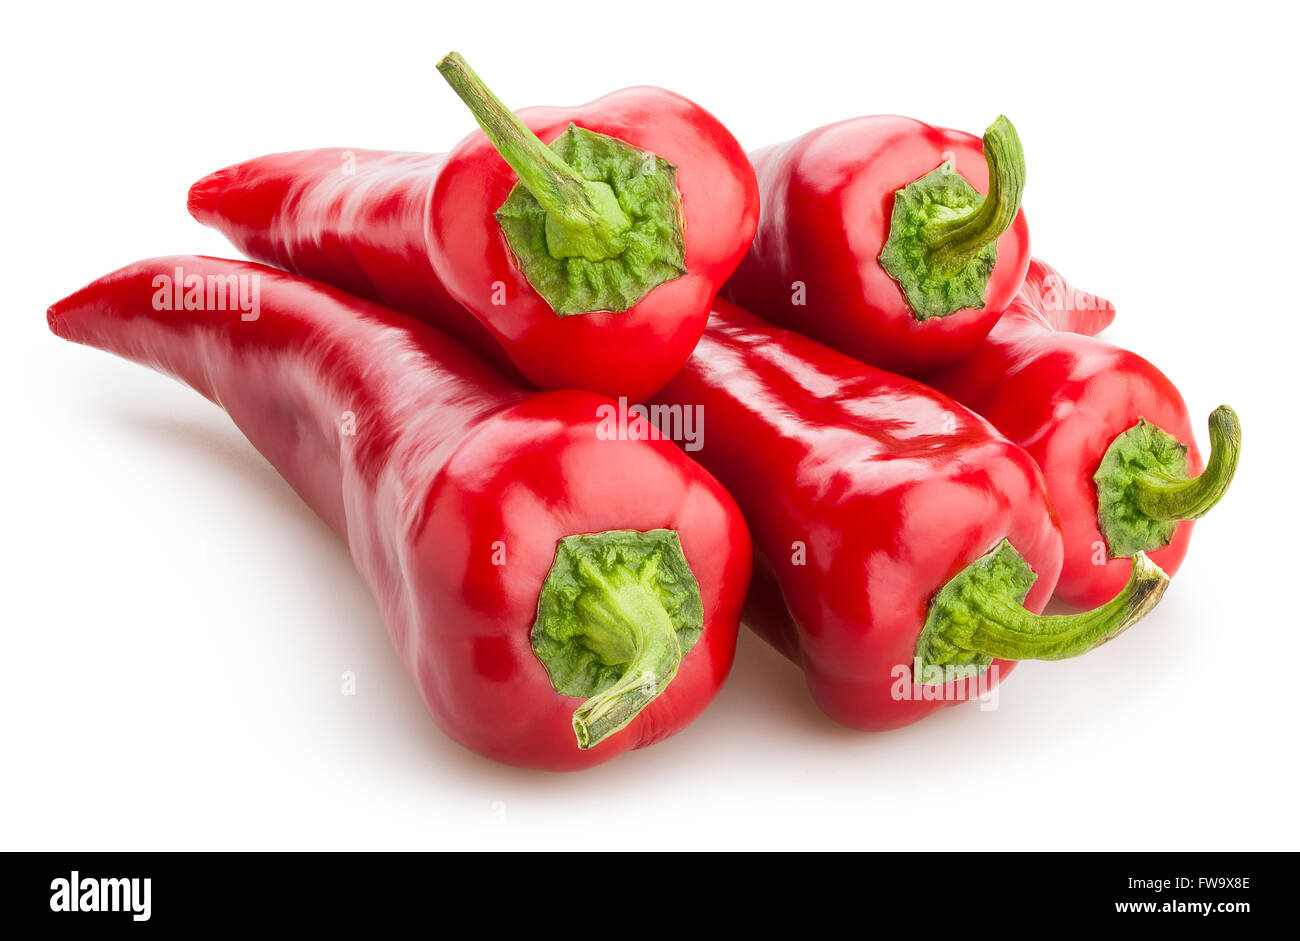 red pepper isolated - Stock Image